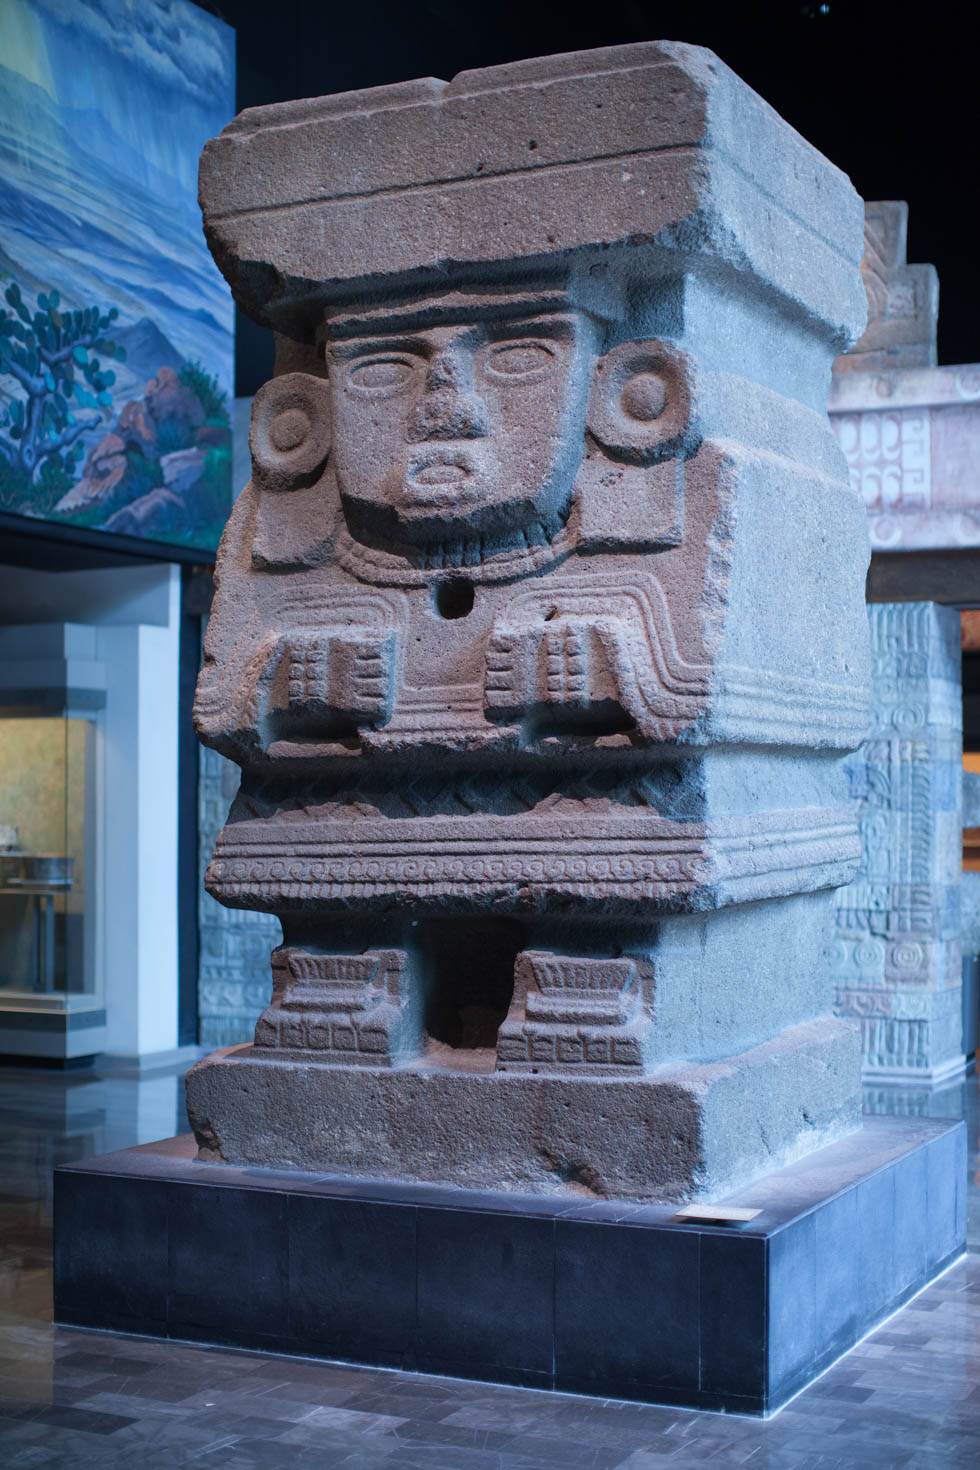 Mexico City and the National Museum of Anthropology #vezzaniphotography